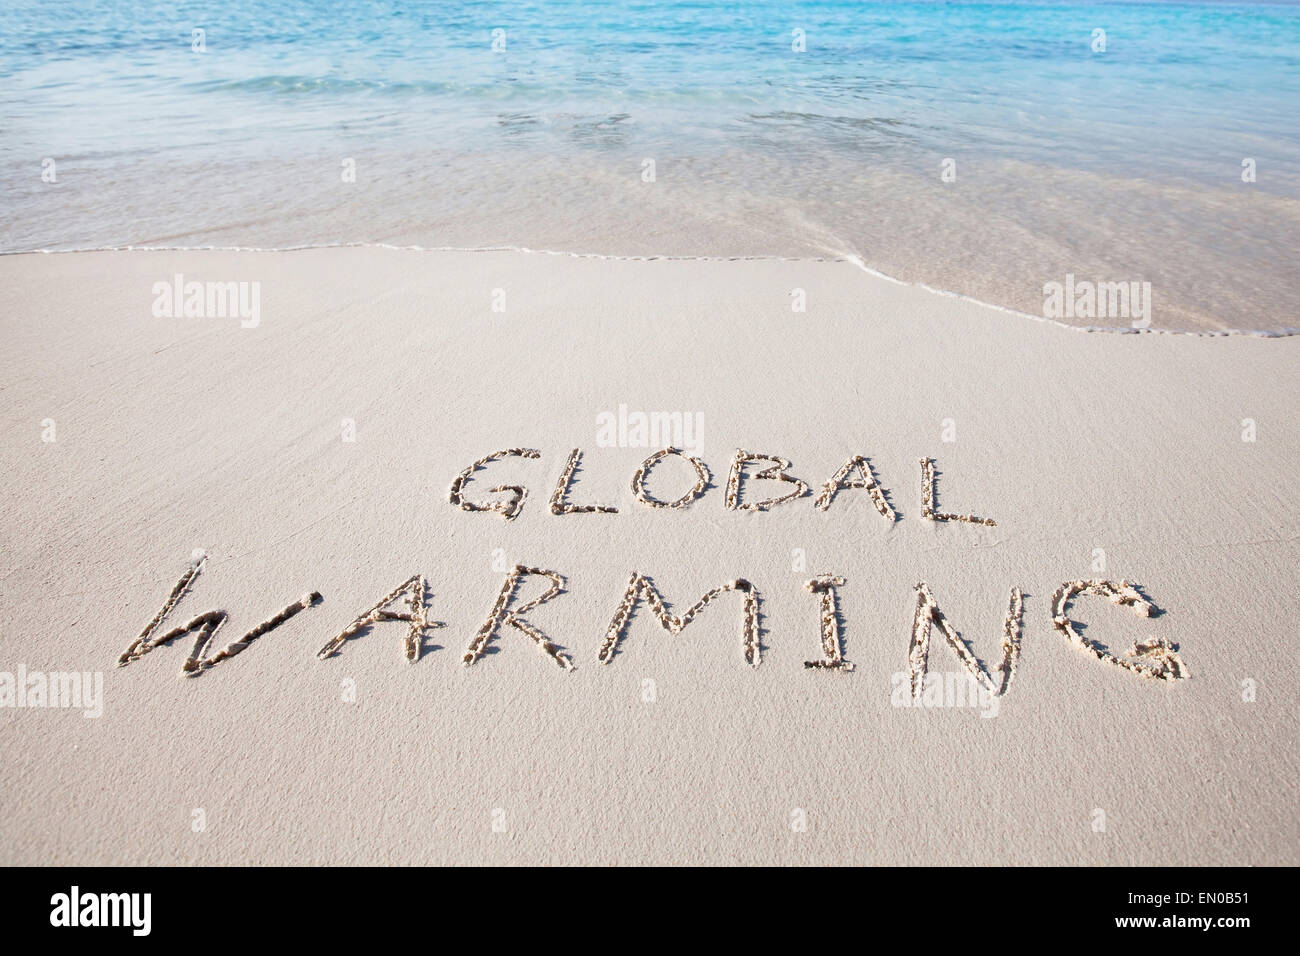 global warming concept - Stock Image